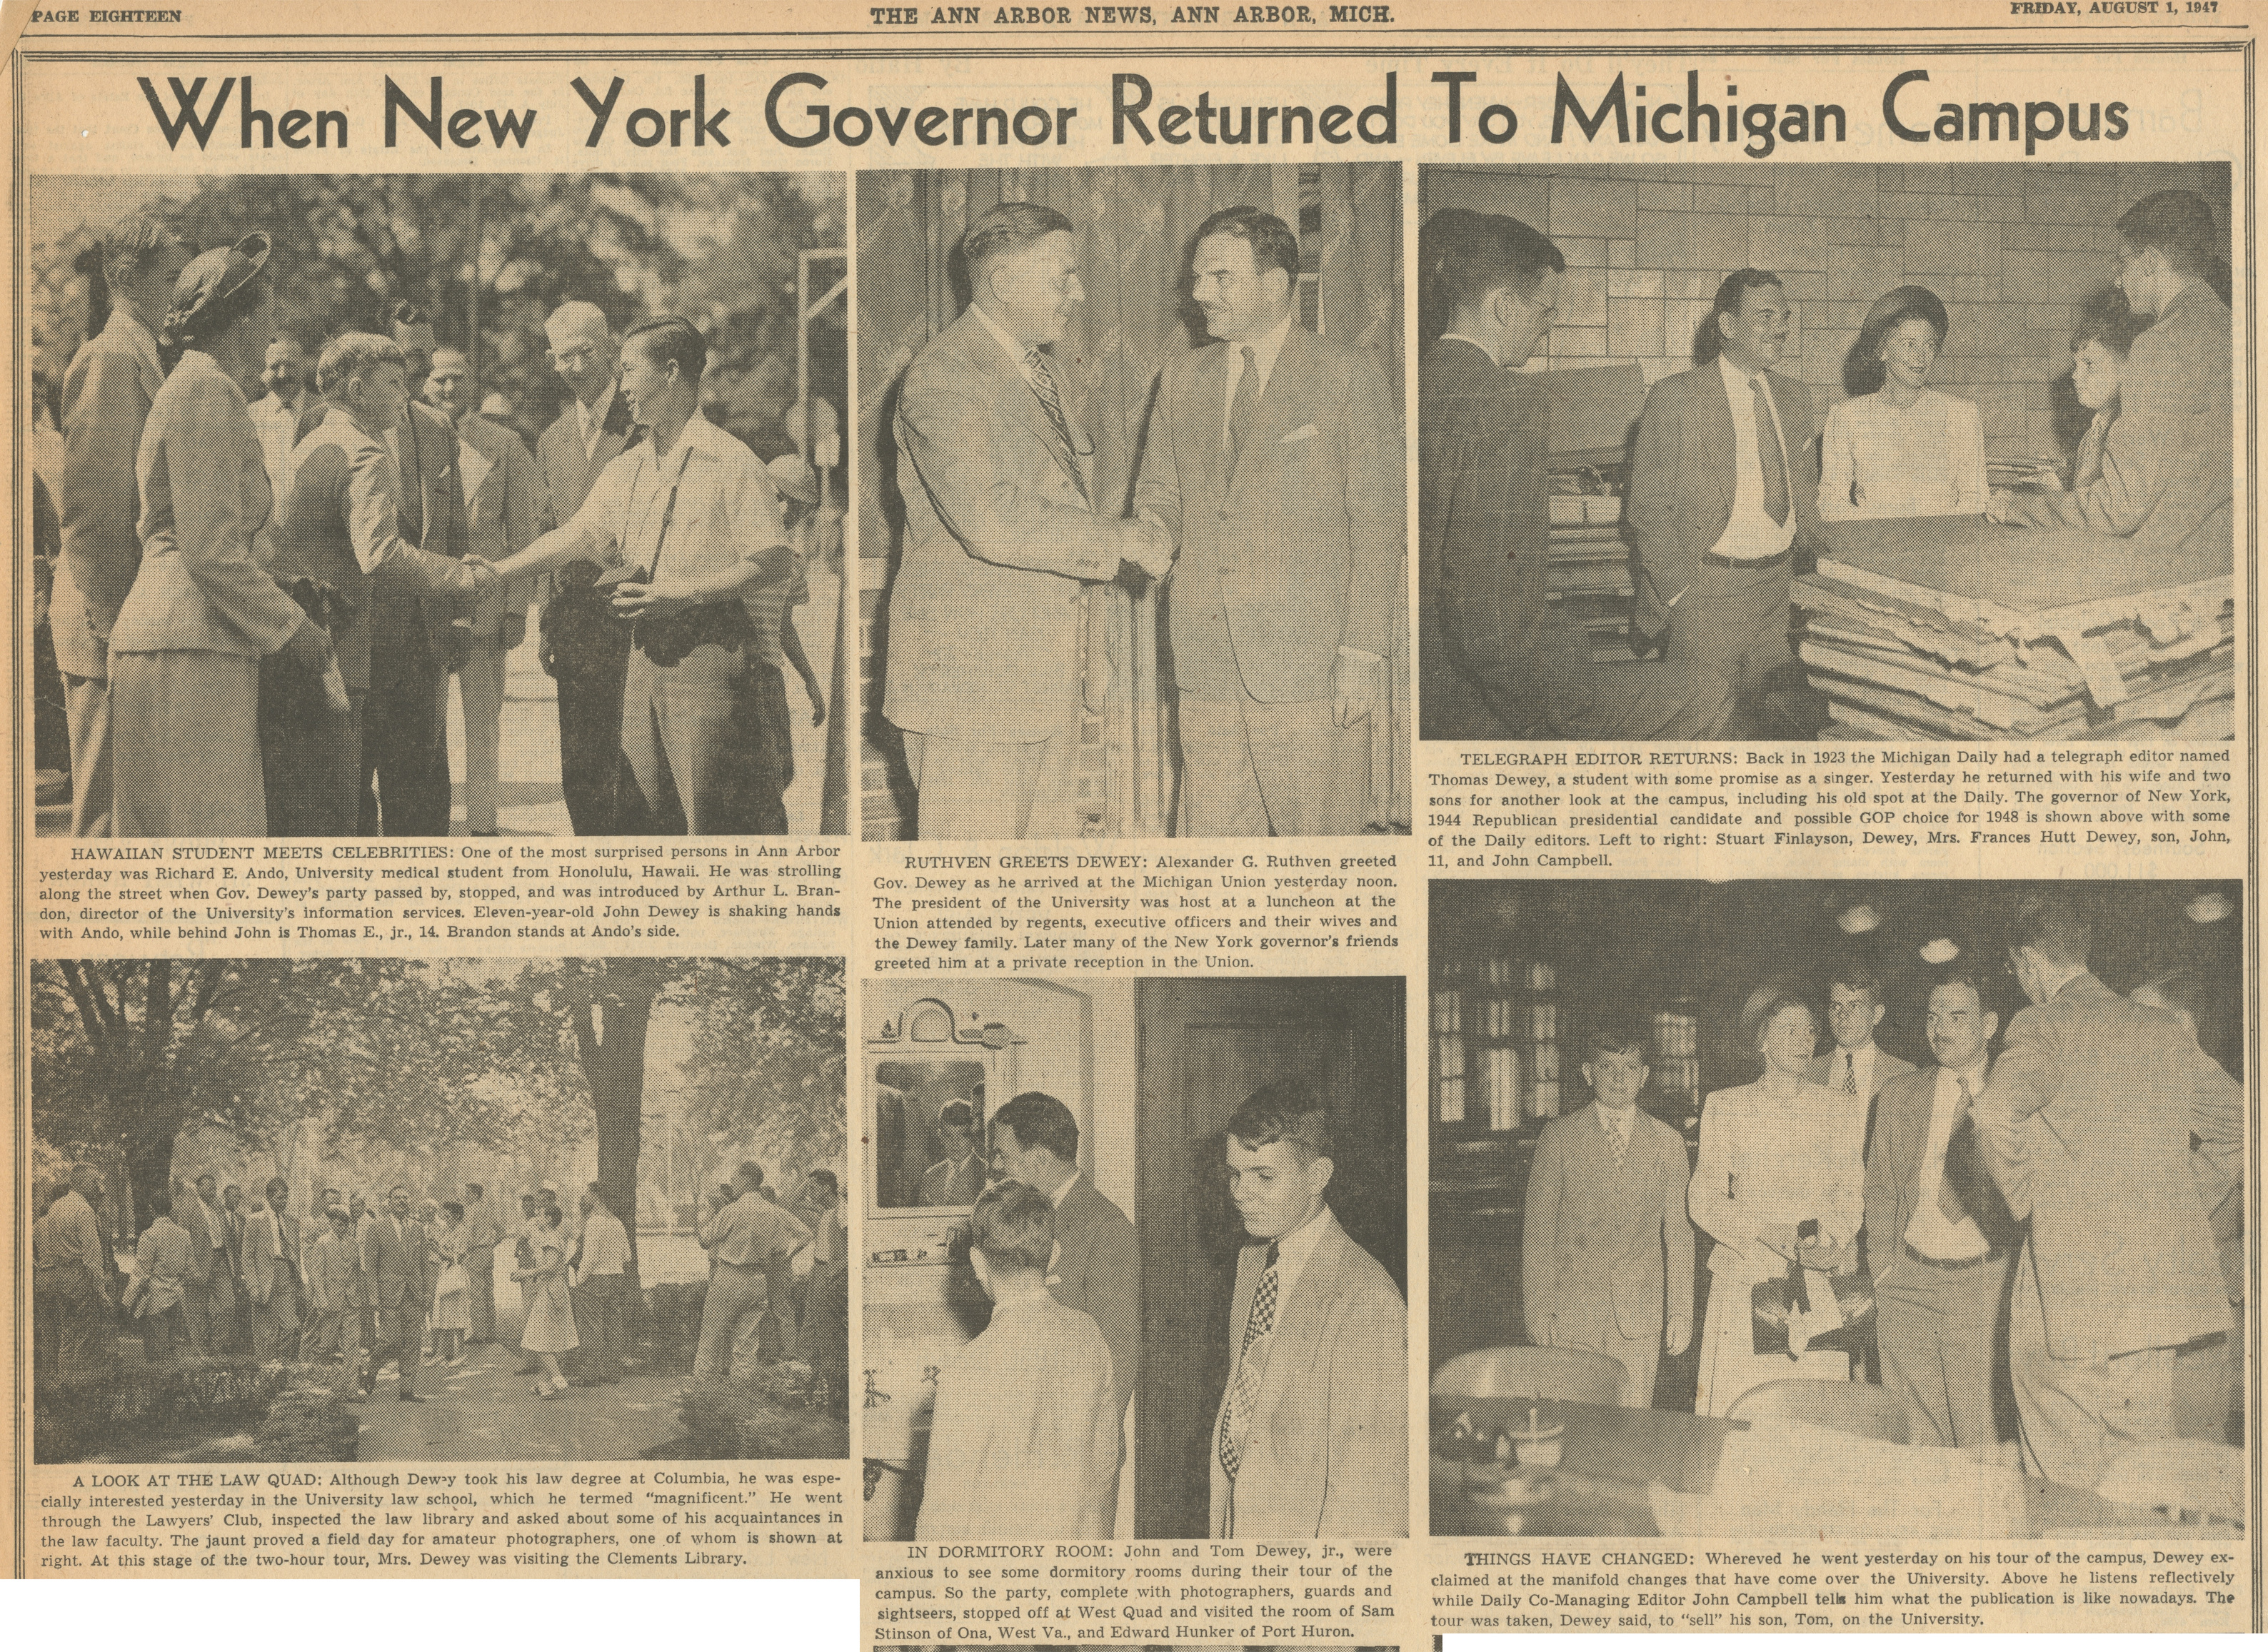 When New York Governor Returned To Michigan Campus image